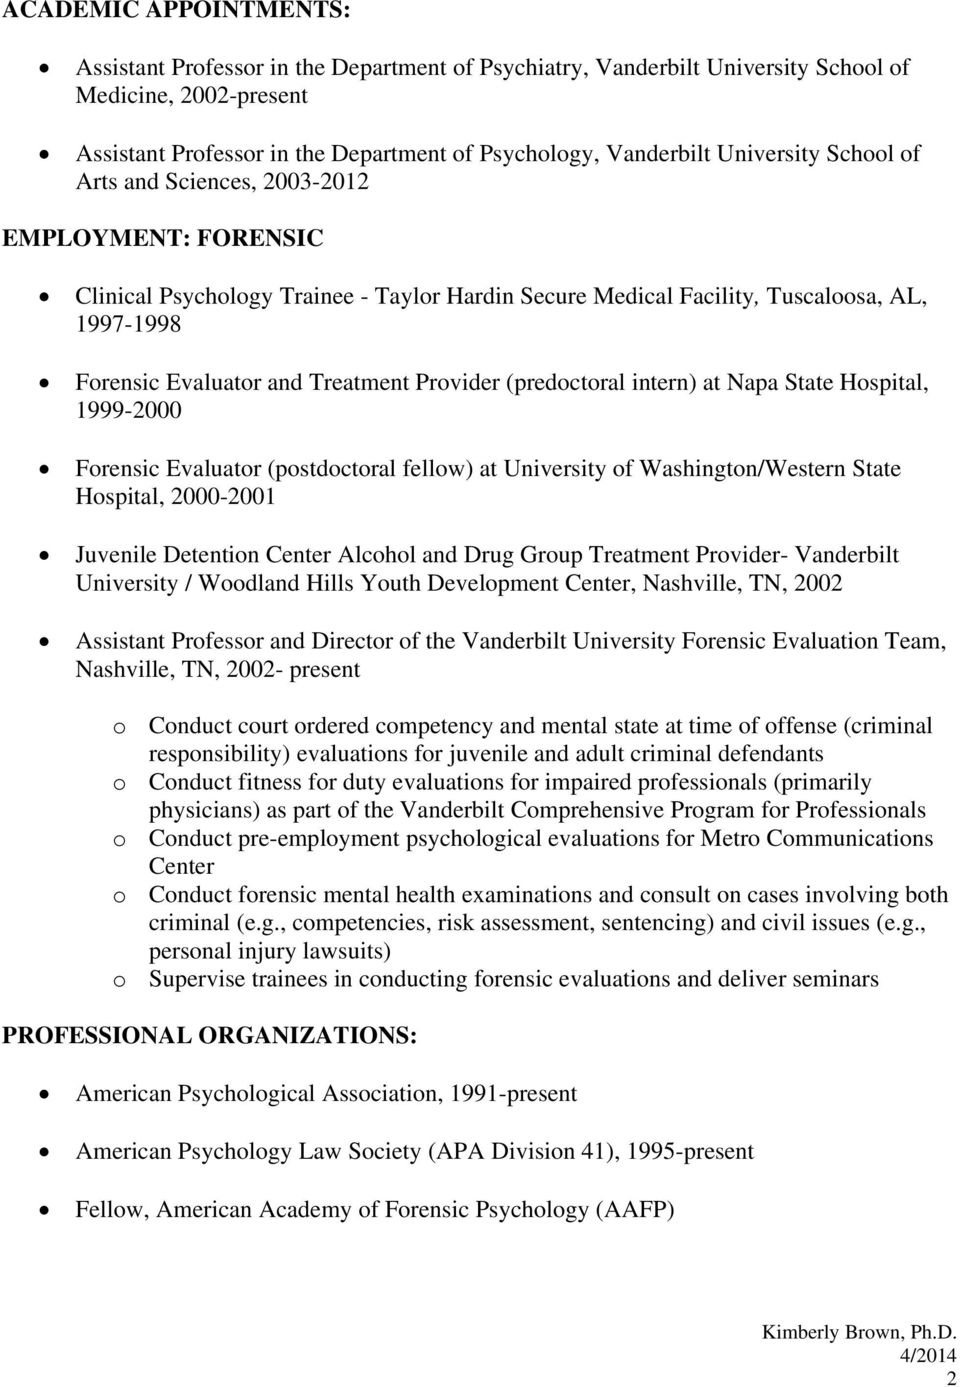 Provider (predoctoral intern) at Napa State Hospital, 1999-2000 Forensic Evaluator (postdoctoral fellow) at University of Washington/Western State Hospital, 2000-2001 Juvenile Detention Center